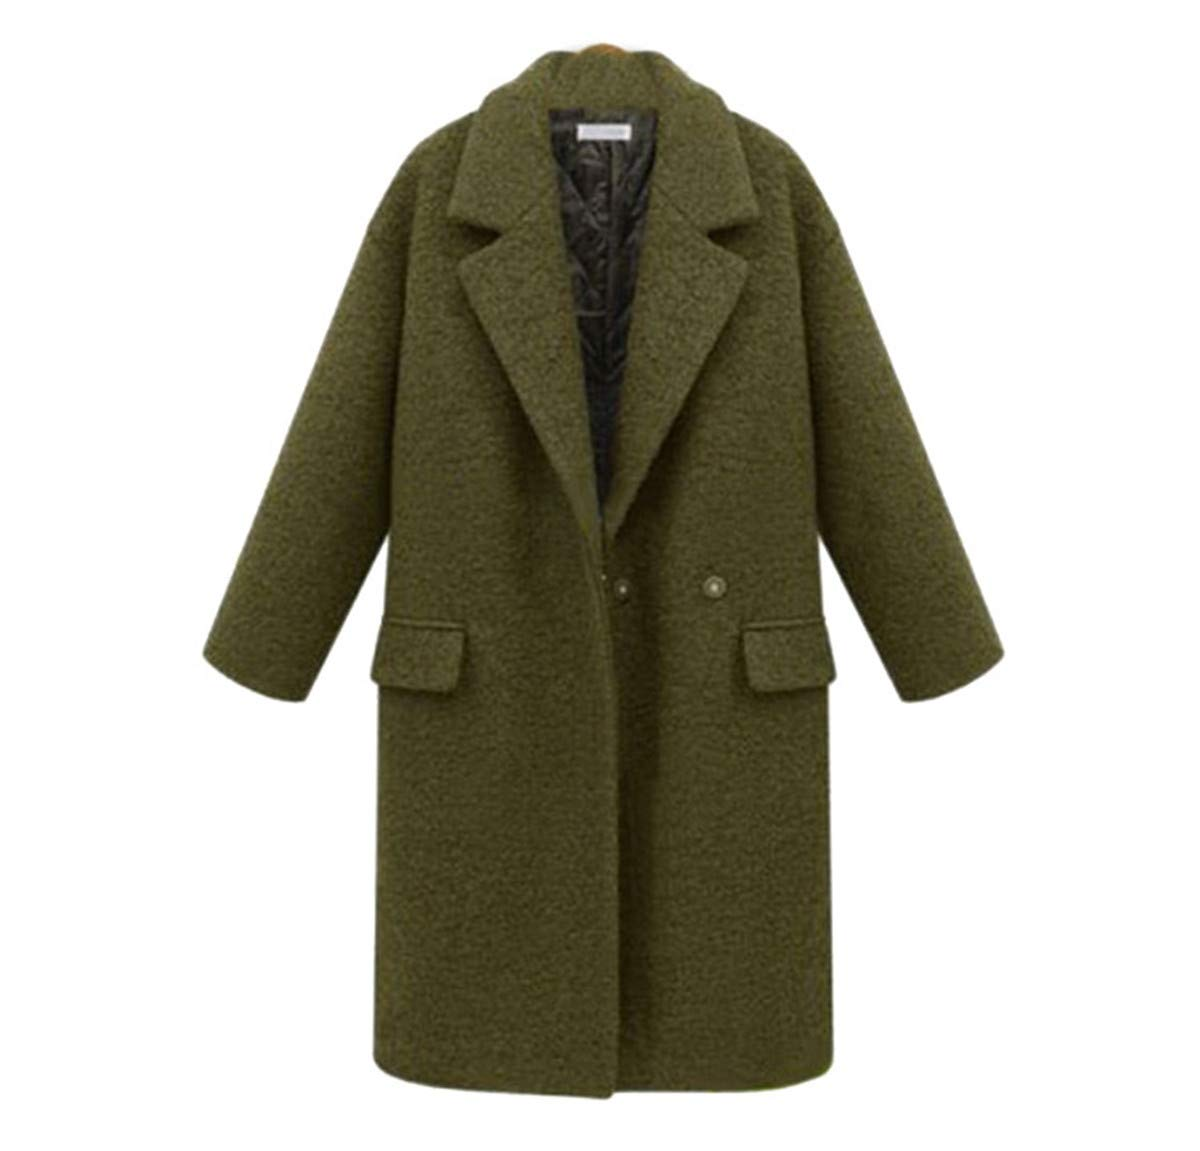 Womens Winter Thickened Wool Trench Down Long Coat Outdoor Lightweight Faux Fur Trimmed Collar Oversized Coat (Army Green, 4XL) by Aurorax